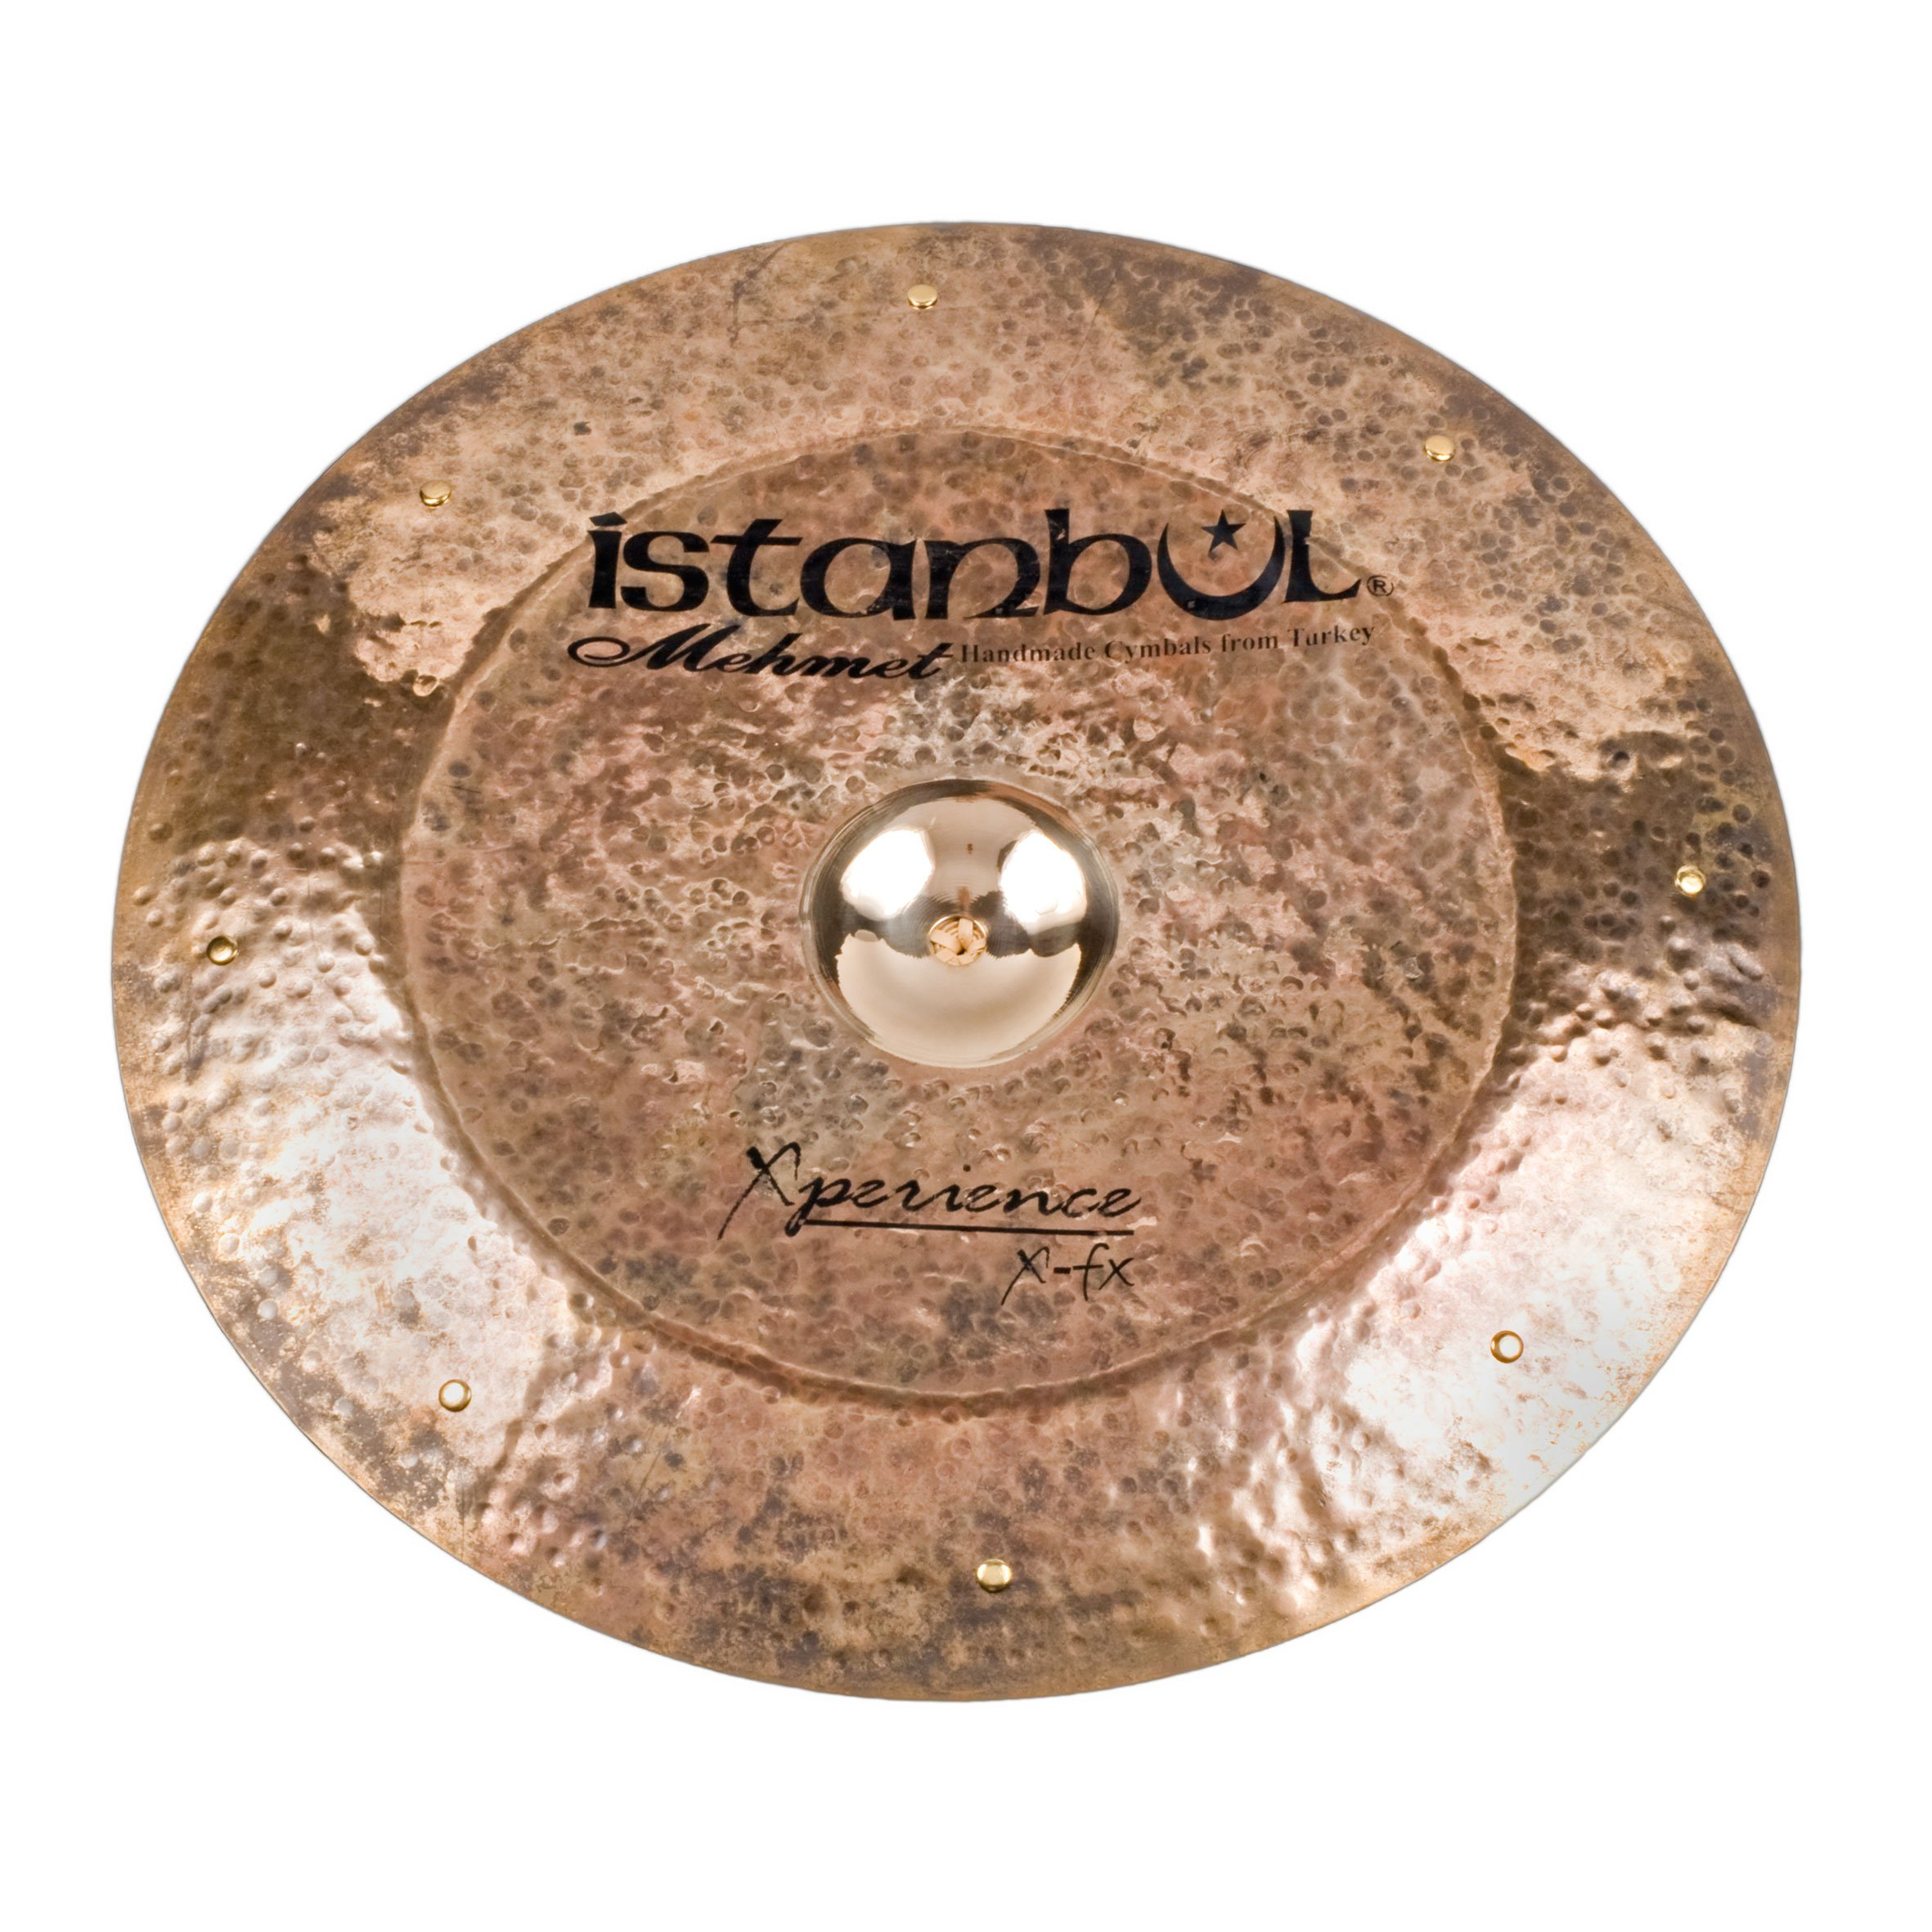 Istanbul Mehmet Cymbals X-Perience Series XXFX-ZENG14 14-Inch X-Cast Zeng China Sizzle